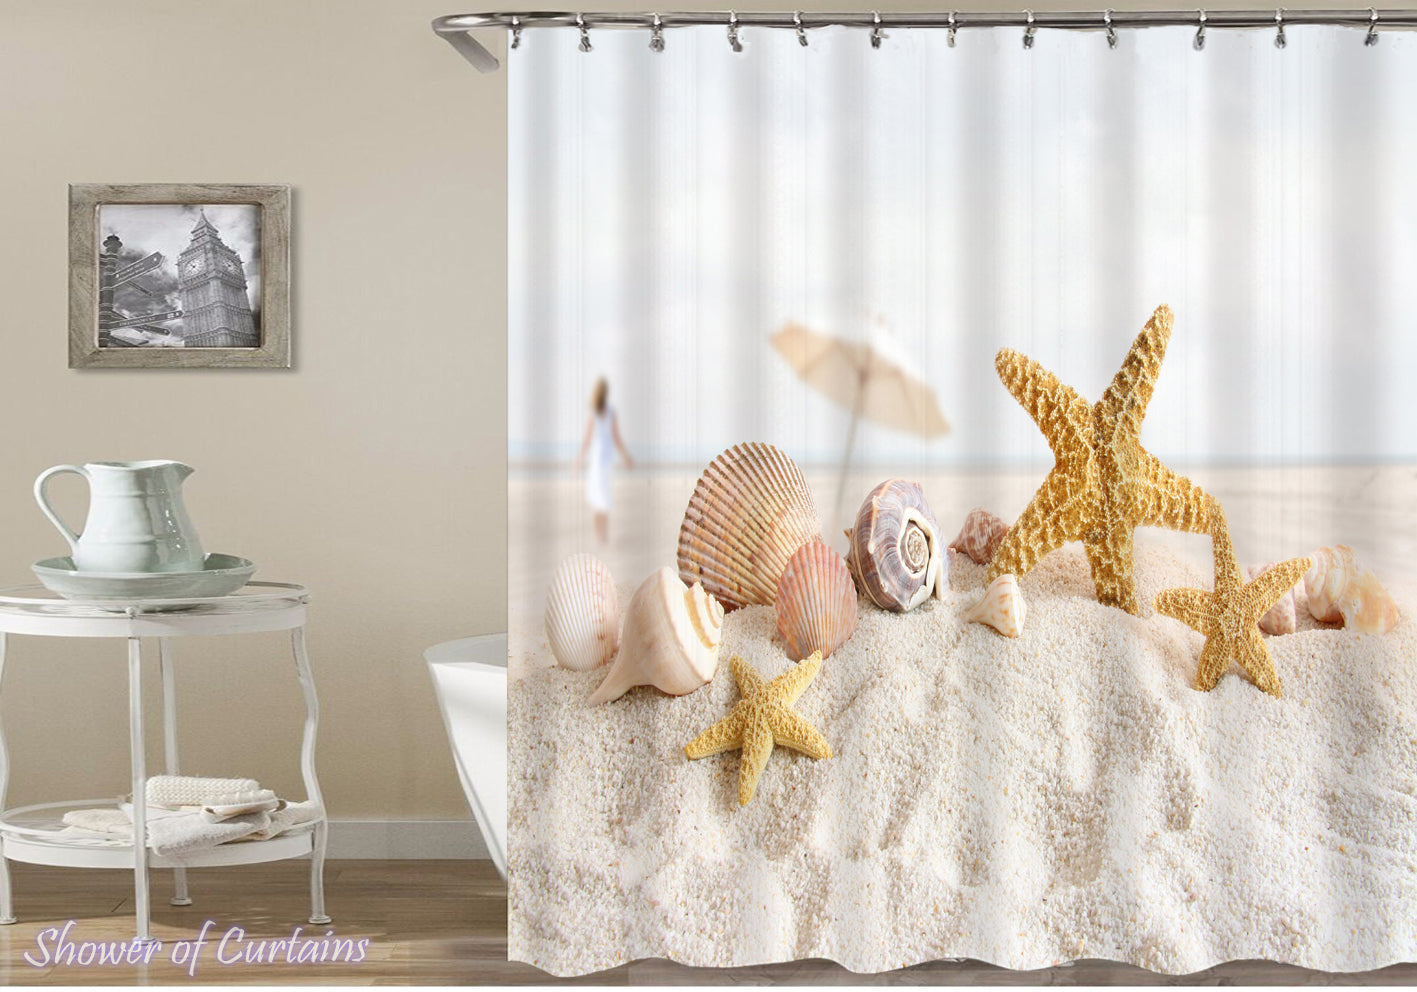 Shower Curtain Of Starfish And Shells On The Beach Sand